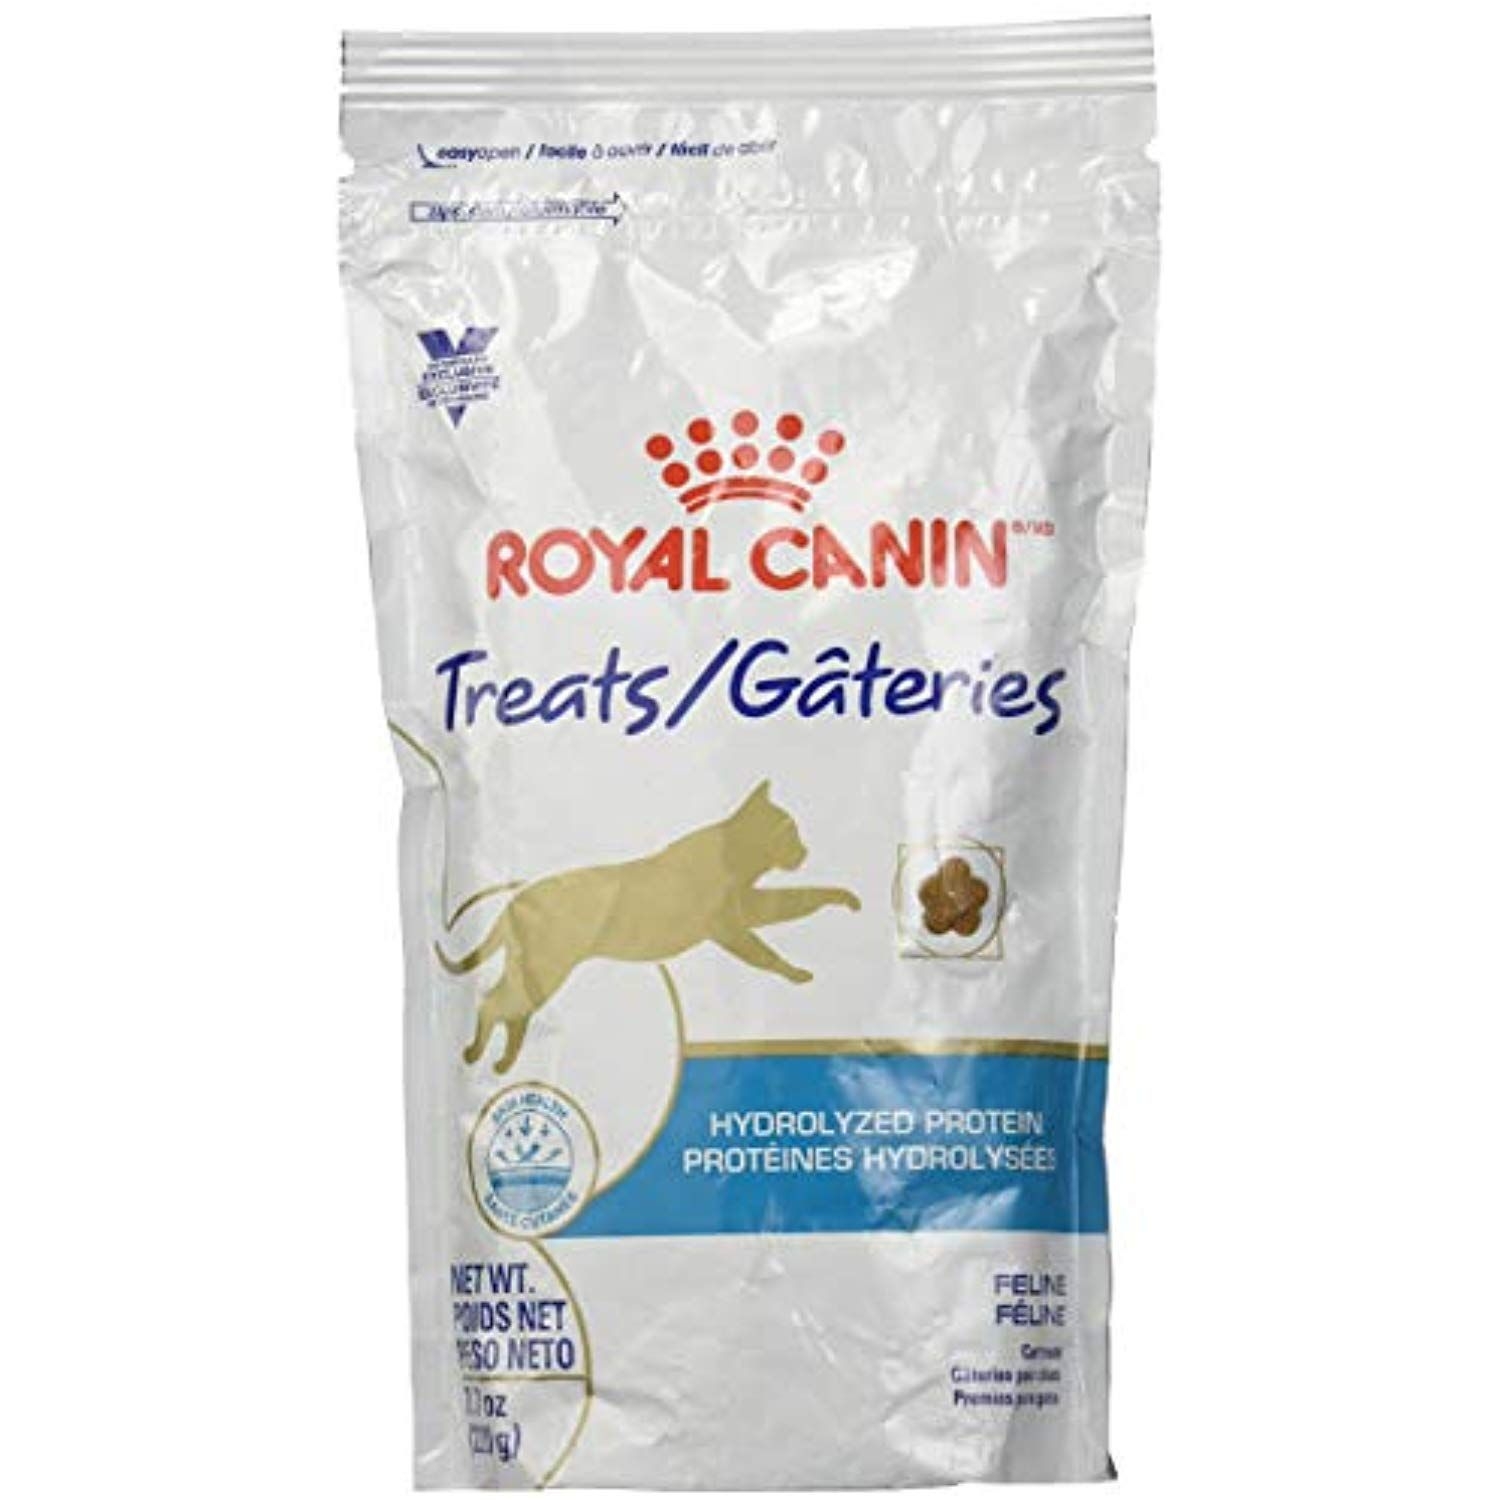 ROYAL CANIN Hydrolyzed Protein Feline Treats (7.8 oz